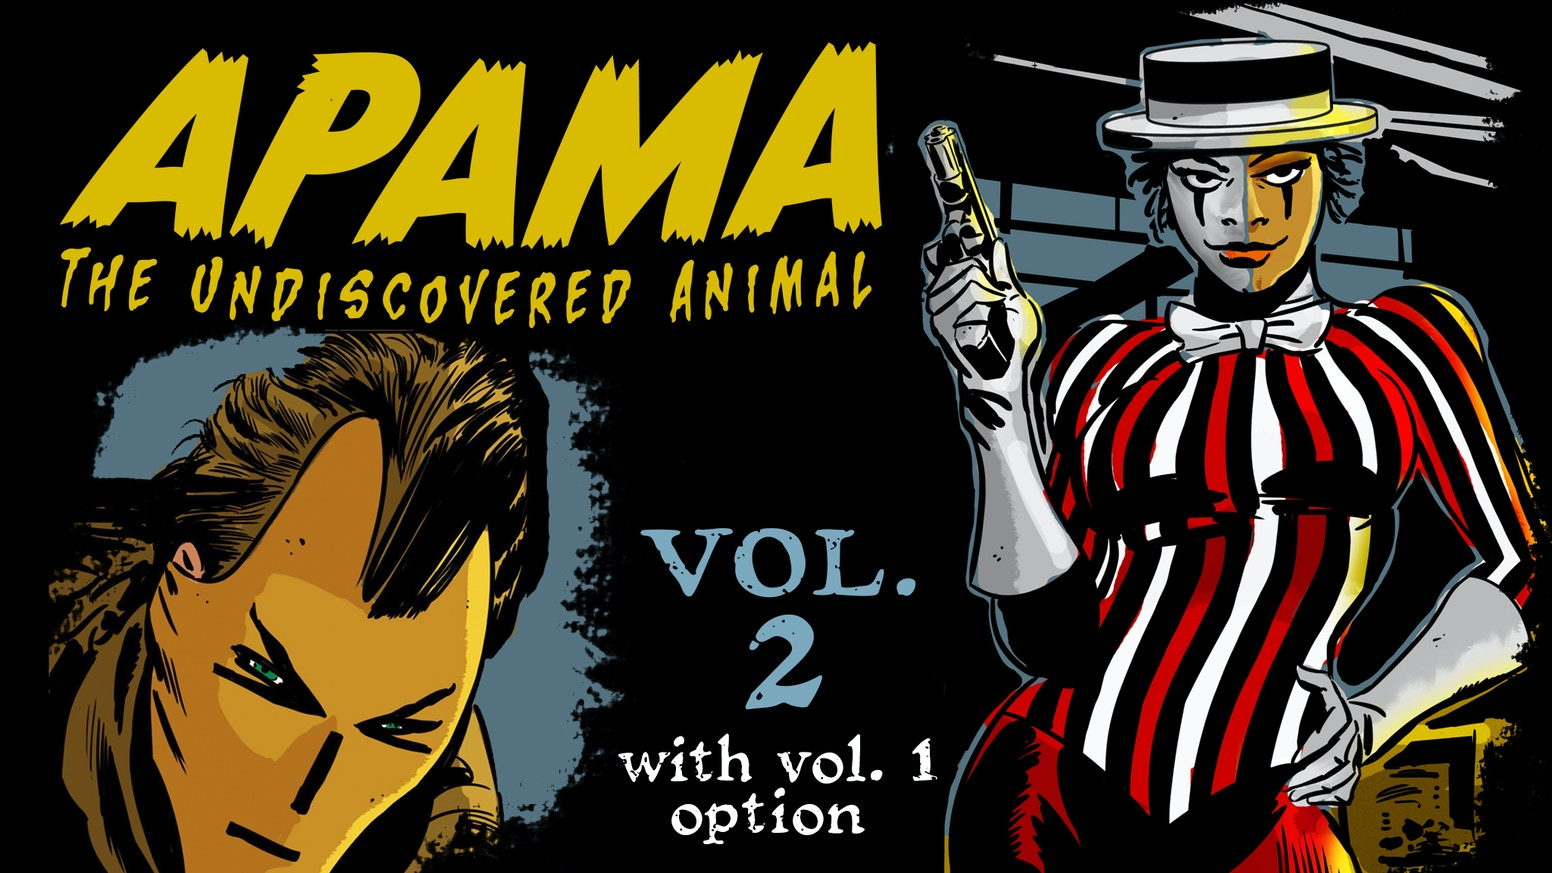 The new 160+ page story arc (with vol. 1 option) of the critically acclaimed Apama series includes 6 issues, and is loaded with extras!